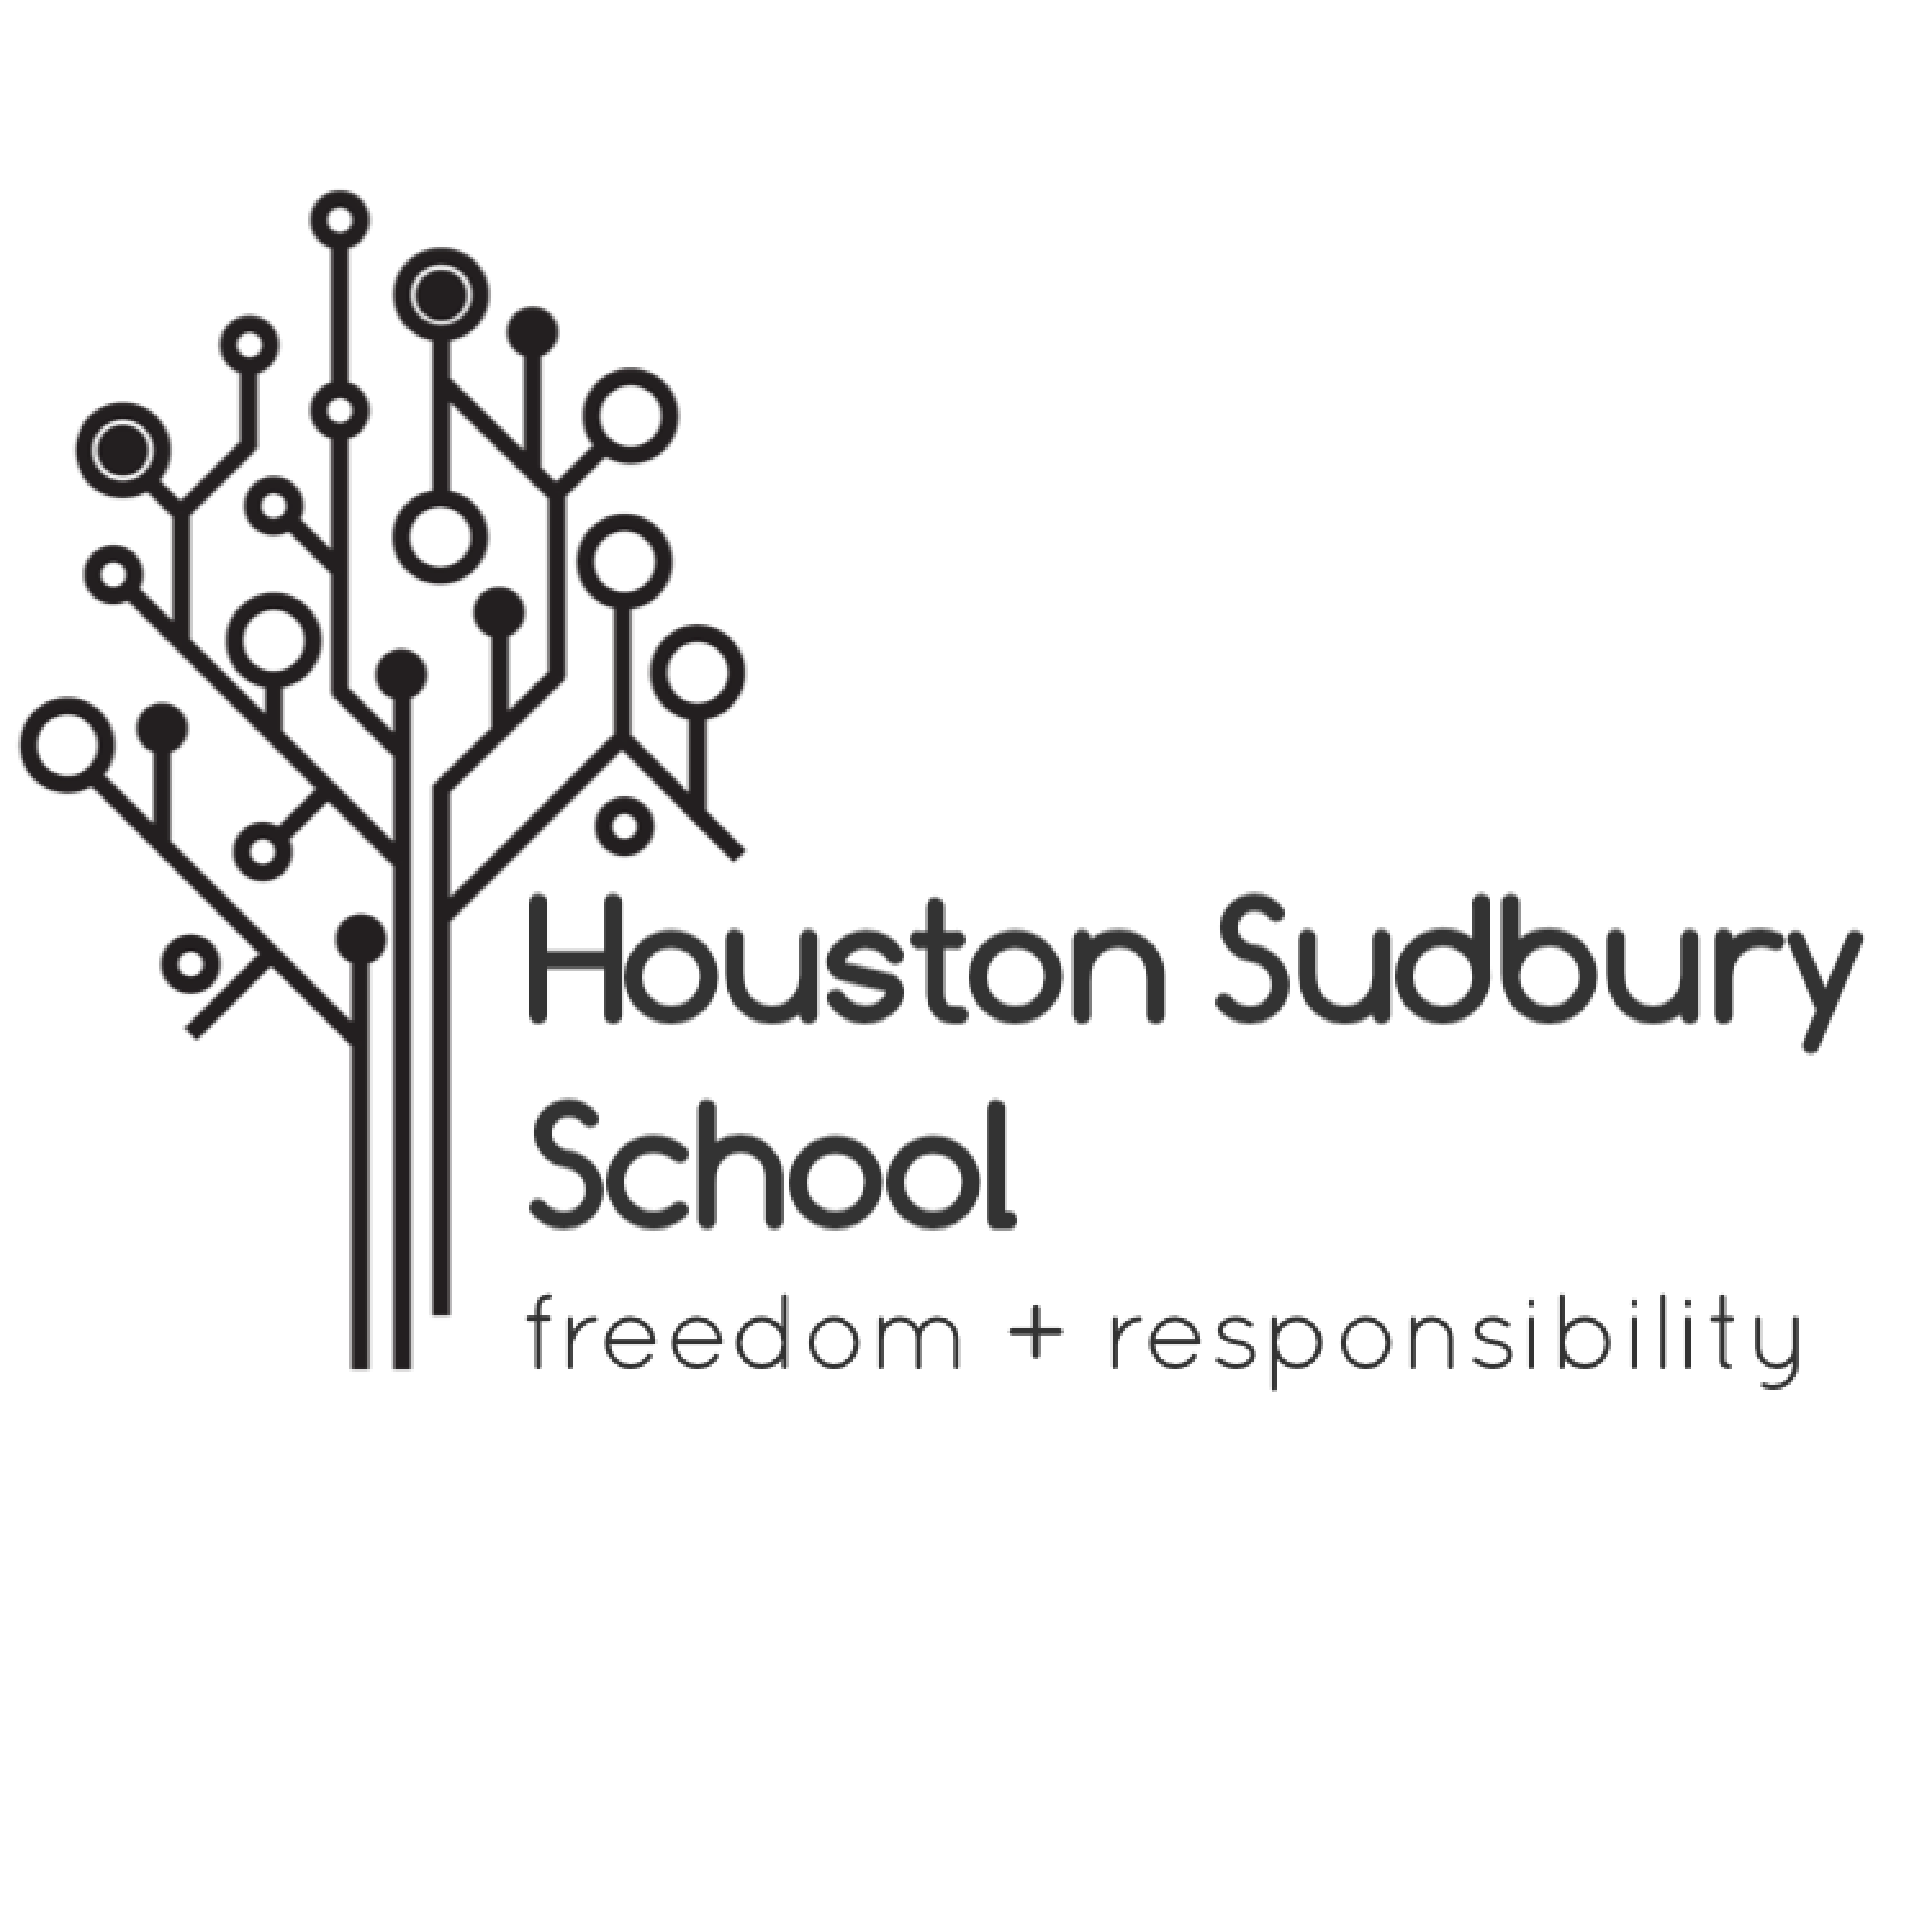 Houston Sudbury School logo